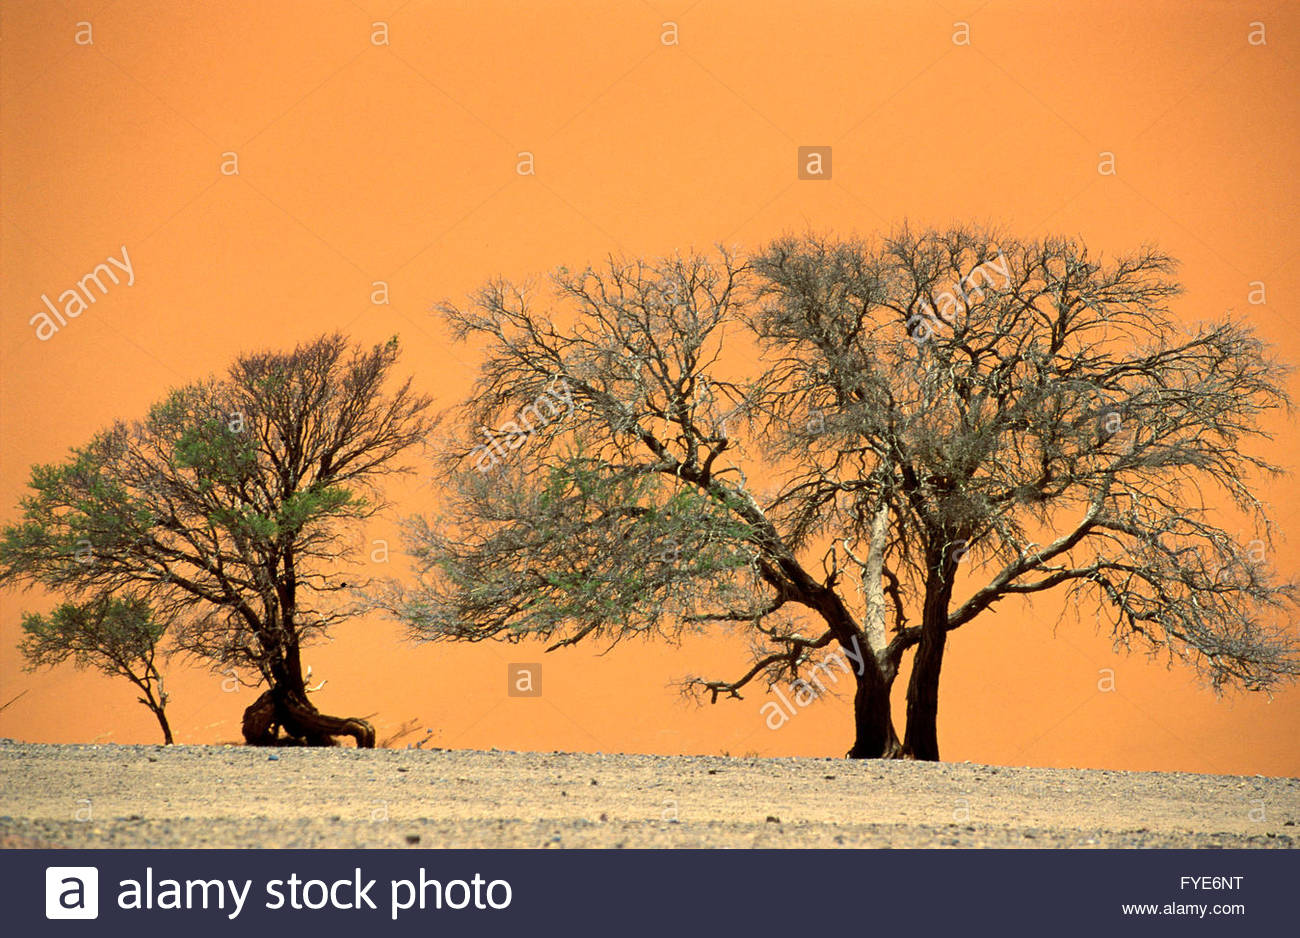 Dead Tree and Sand Dunes in Namib Desert Namibia - Stock Image